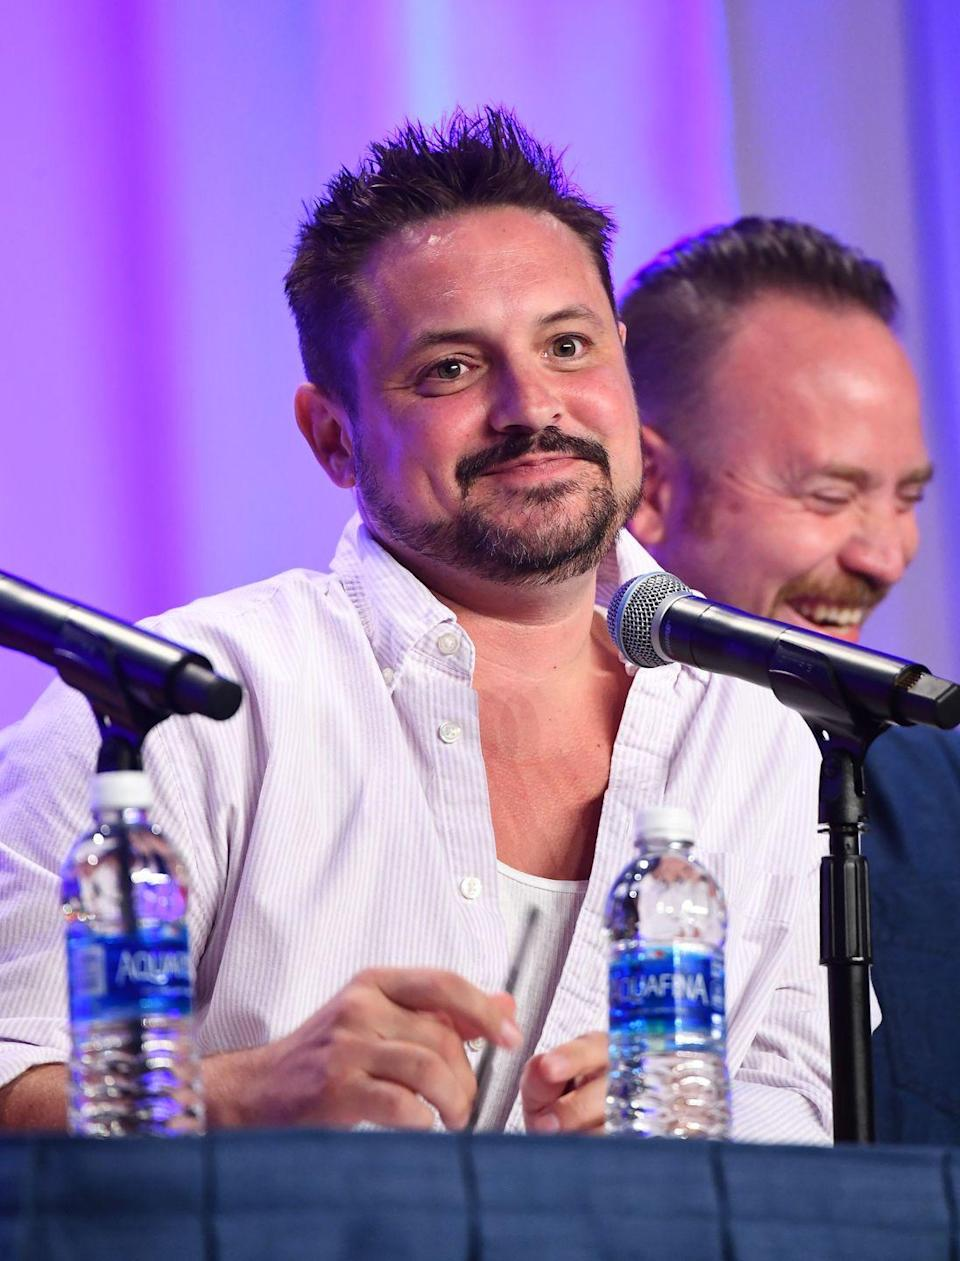 <p>The former <em>Boy Meets World</em> alum is an in-demand voice actor now. He voiced Terry McGinnins/Batman in <em>Batman Beyond</em>, plays Deadpool in <em>Ultimate Spider-Man</em> and Star-Lord in the animated <em>Guardians of the Galaxy</em>. He's also Bumblebee in many of the <em>Transformers</em> cartoons and voiced Ron Stoppable in the <em>Kim Possible</em> series.</p>